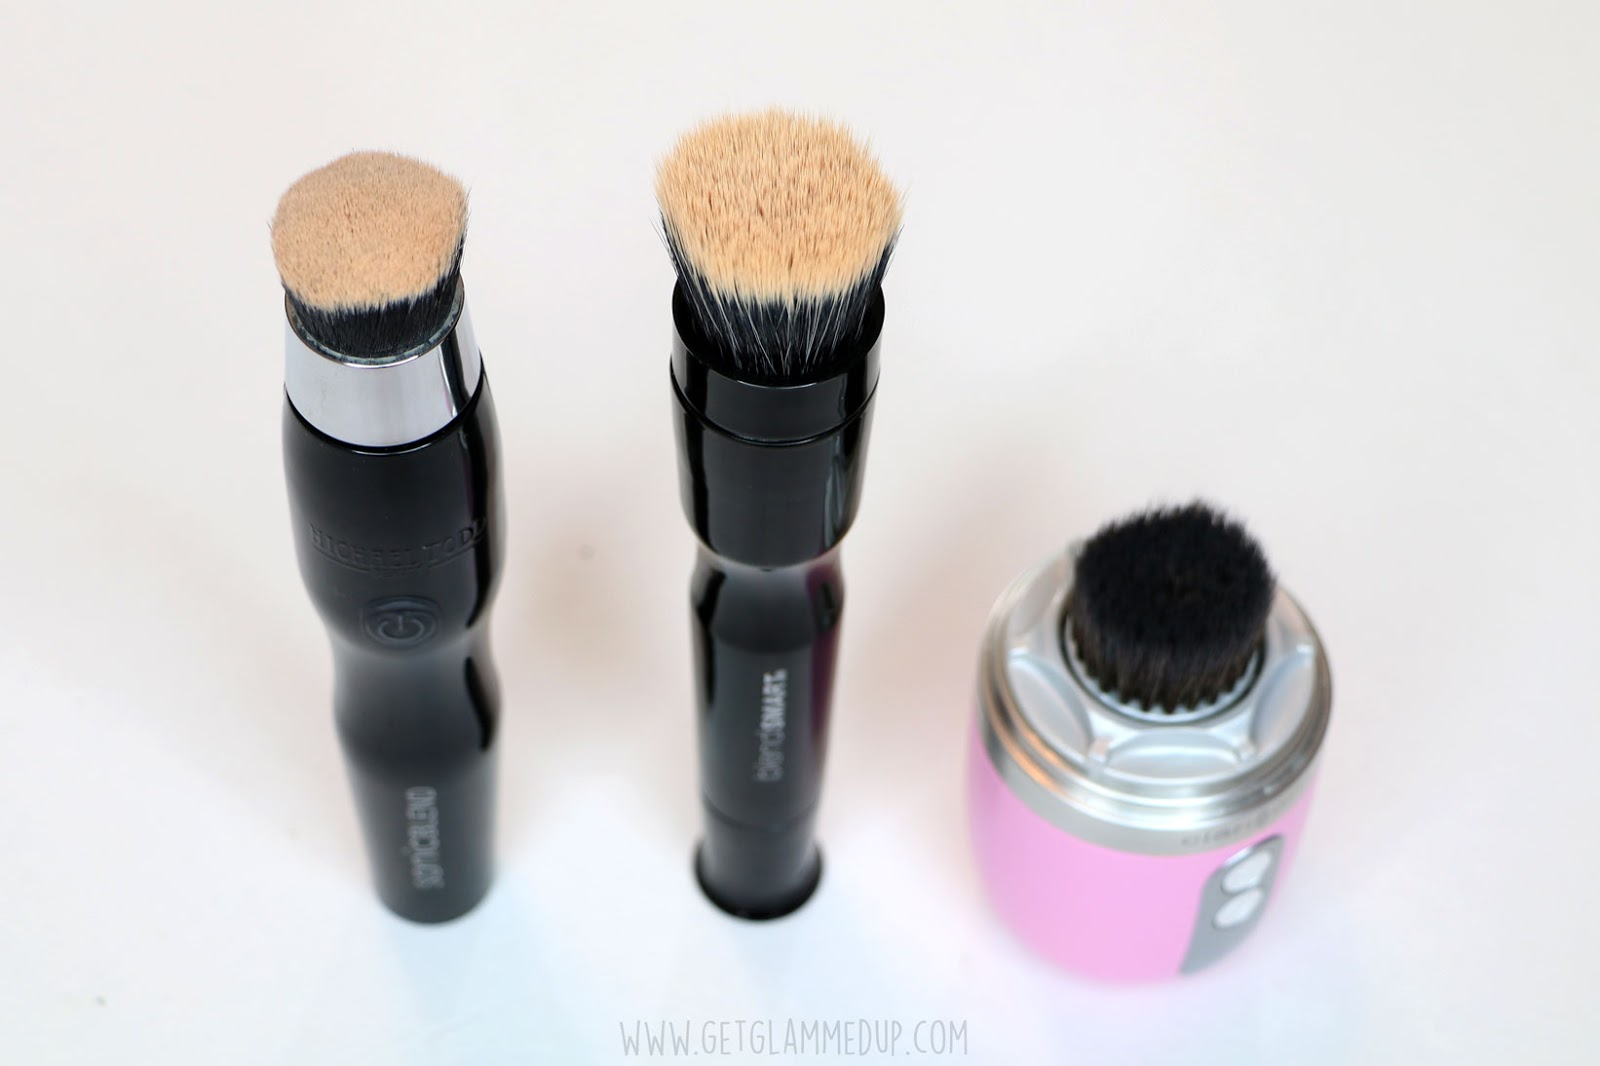 Video Sonic Foundation Brushes Compared Sonicblend Vs Blendsmart